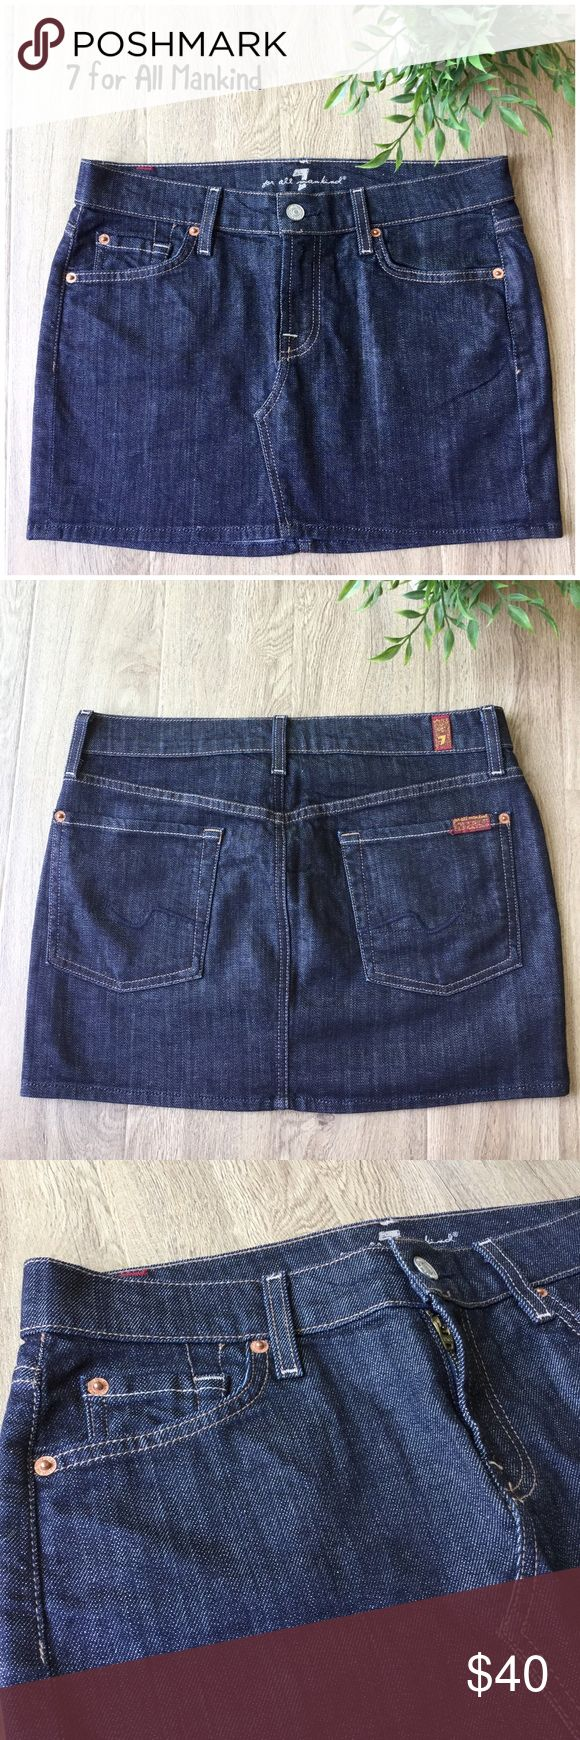 """7 for All Mankind Roxy denim mini skirt size 28 A cute dark wash denim skirt to get you in the mood for fall.  * Roxy style * Angled hem accent across front center * Front and rear pockets * Darker wash * Waist: 16"""" approx. laying flat * Length: 13"""" approx. from armpit to hem short side * 98% cotton, 2% Lycra * Machine wash, tumble dry * Excellent used condition  * Bundle discount * No trades * Smoke free, pet friendly home 7 For All Mankind Skirts Mini"""